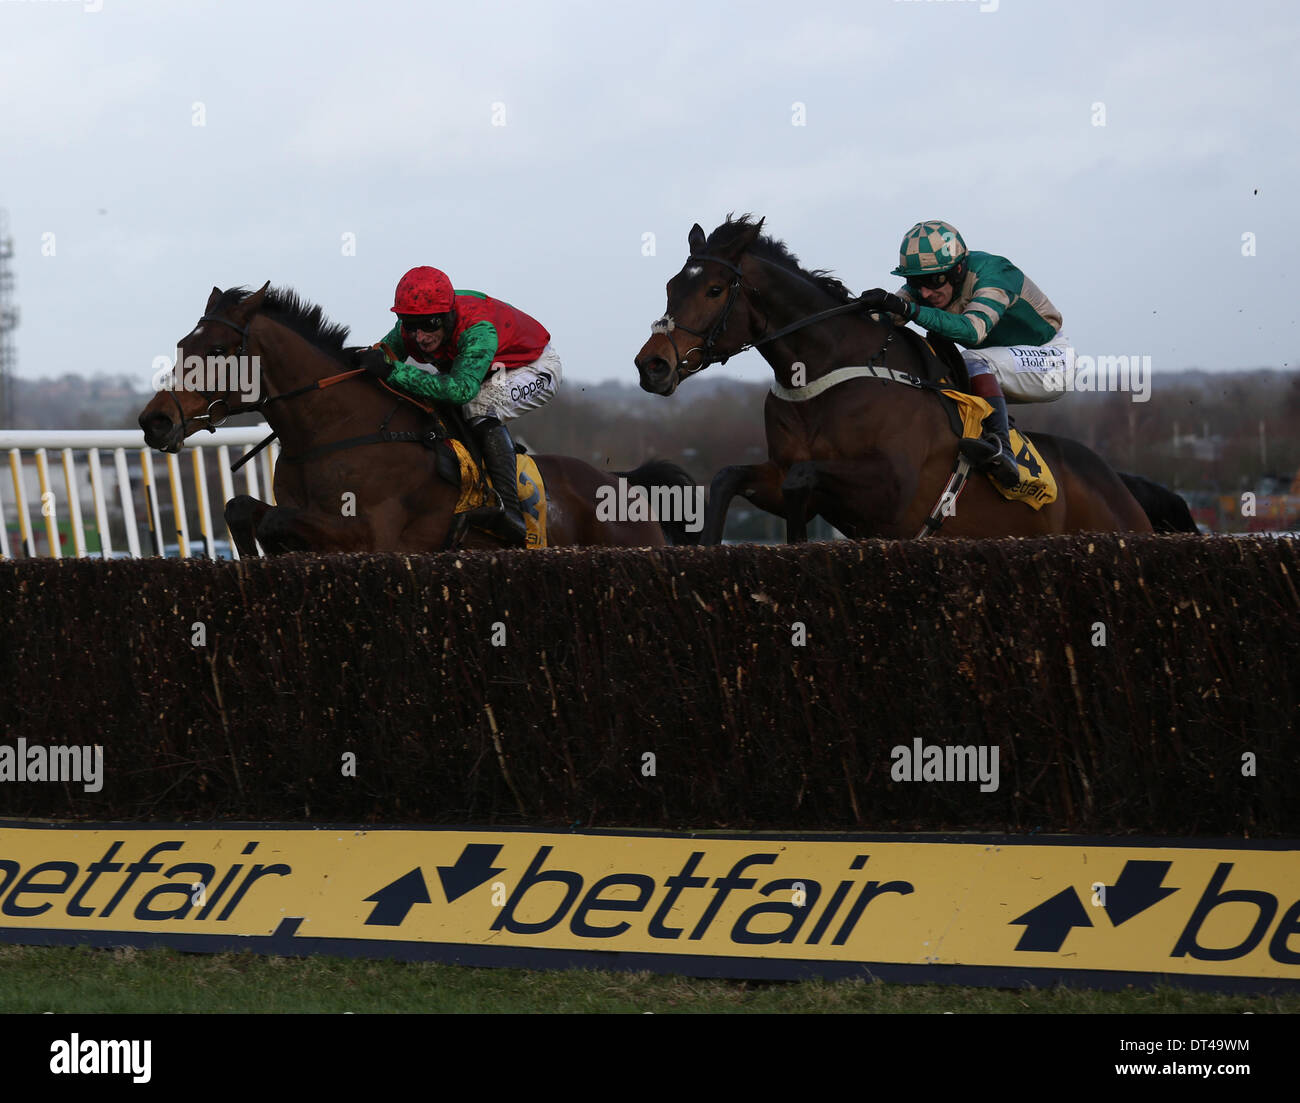 Newbury, Berkshire, UK. 08th Feb, 2014. Module (nearside ) and Dodging Bullets in the Betfair Cash Out Steeple Chase during The Betfair Super Saturday Meeting at Newbury Racecourse Credit:  Action Plus Sports/Alamy Live News - Stock Image